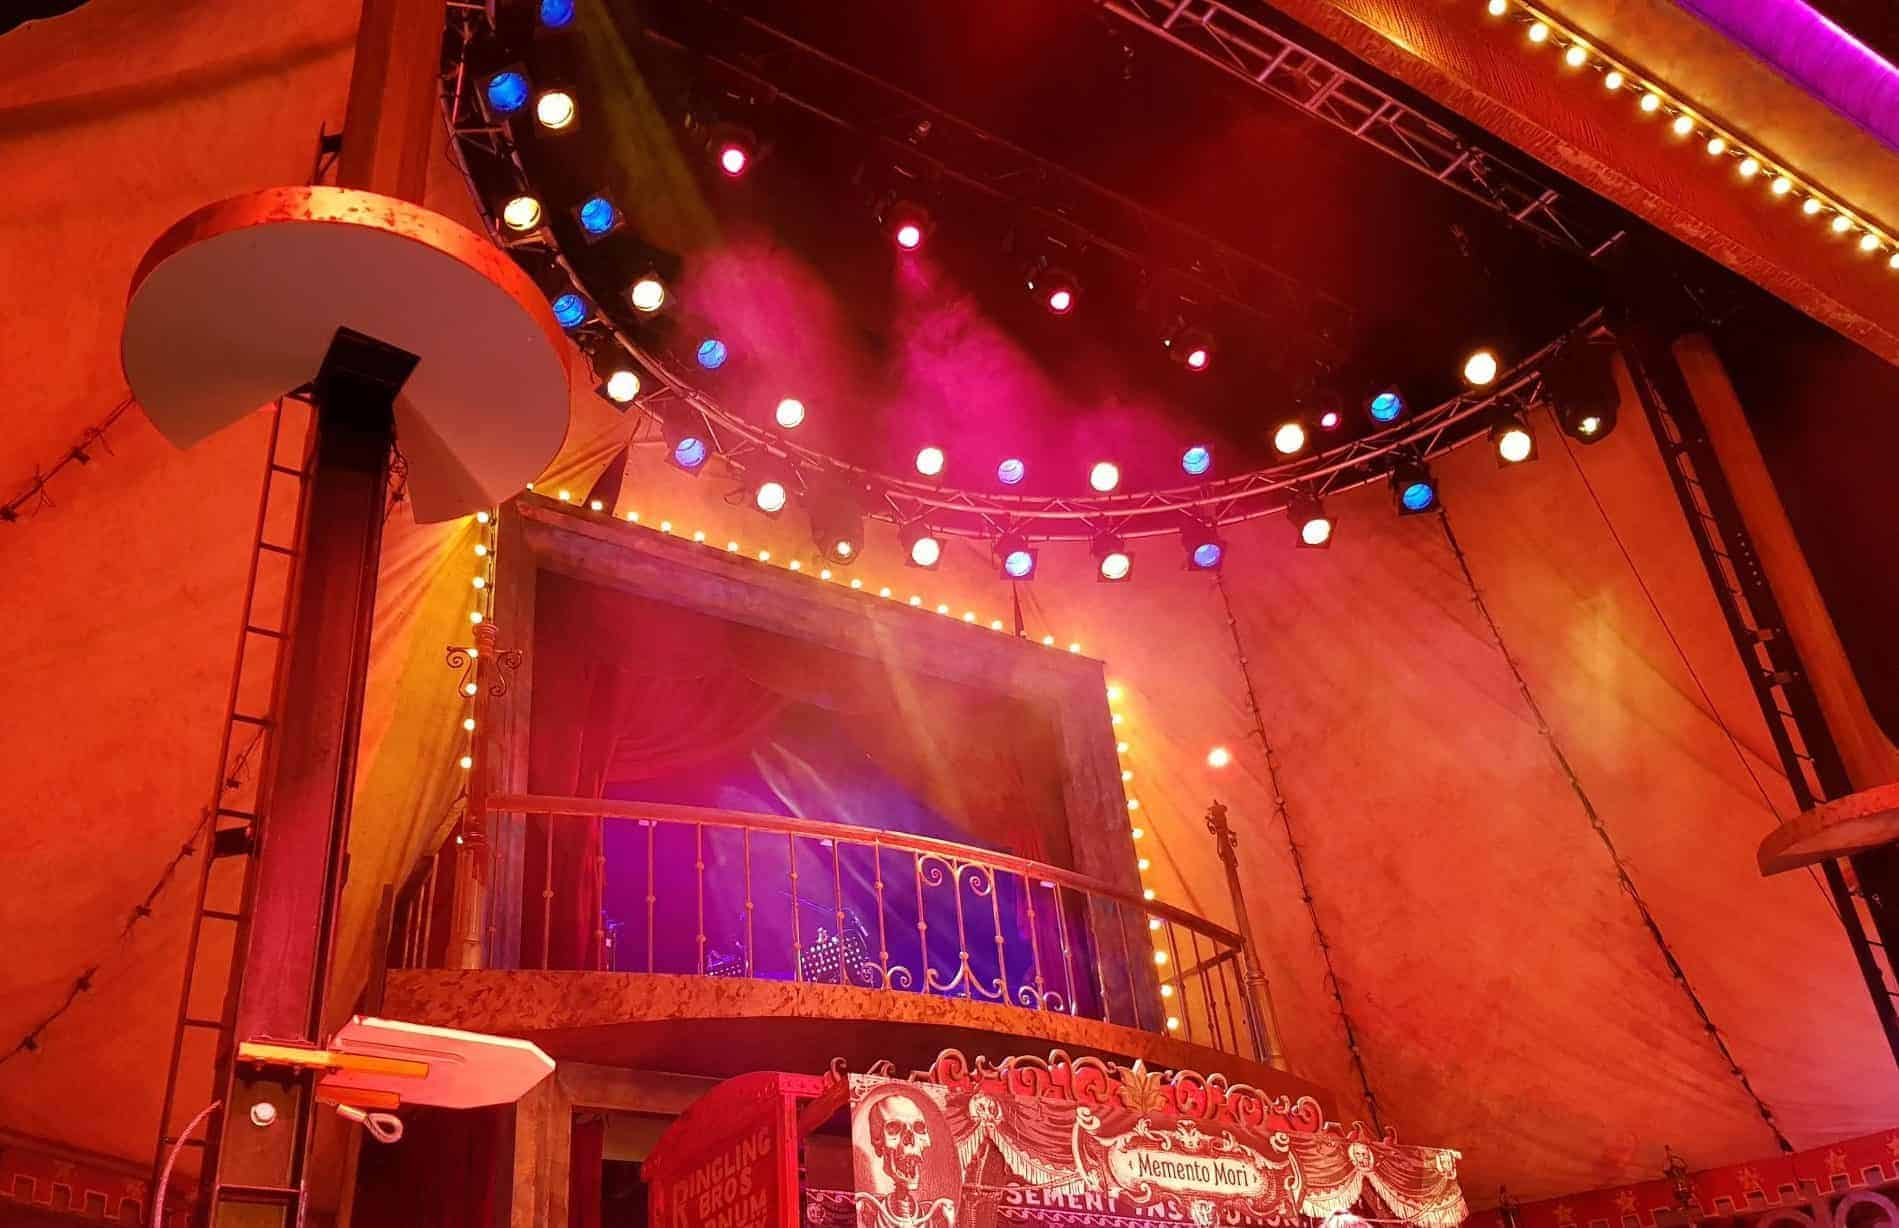 Understand the significance of proper lighting in a theater show